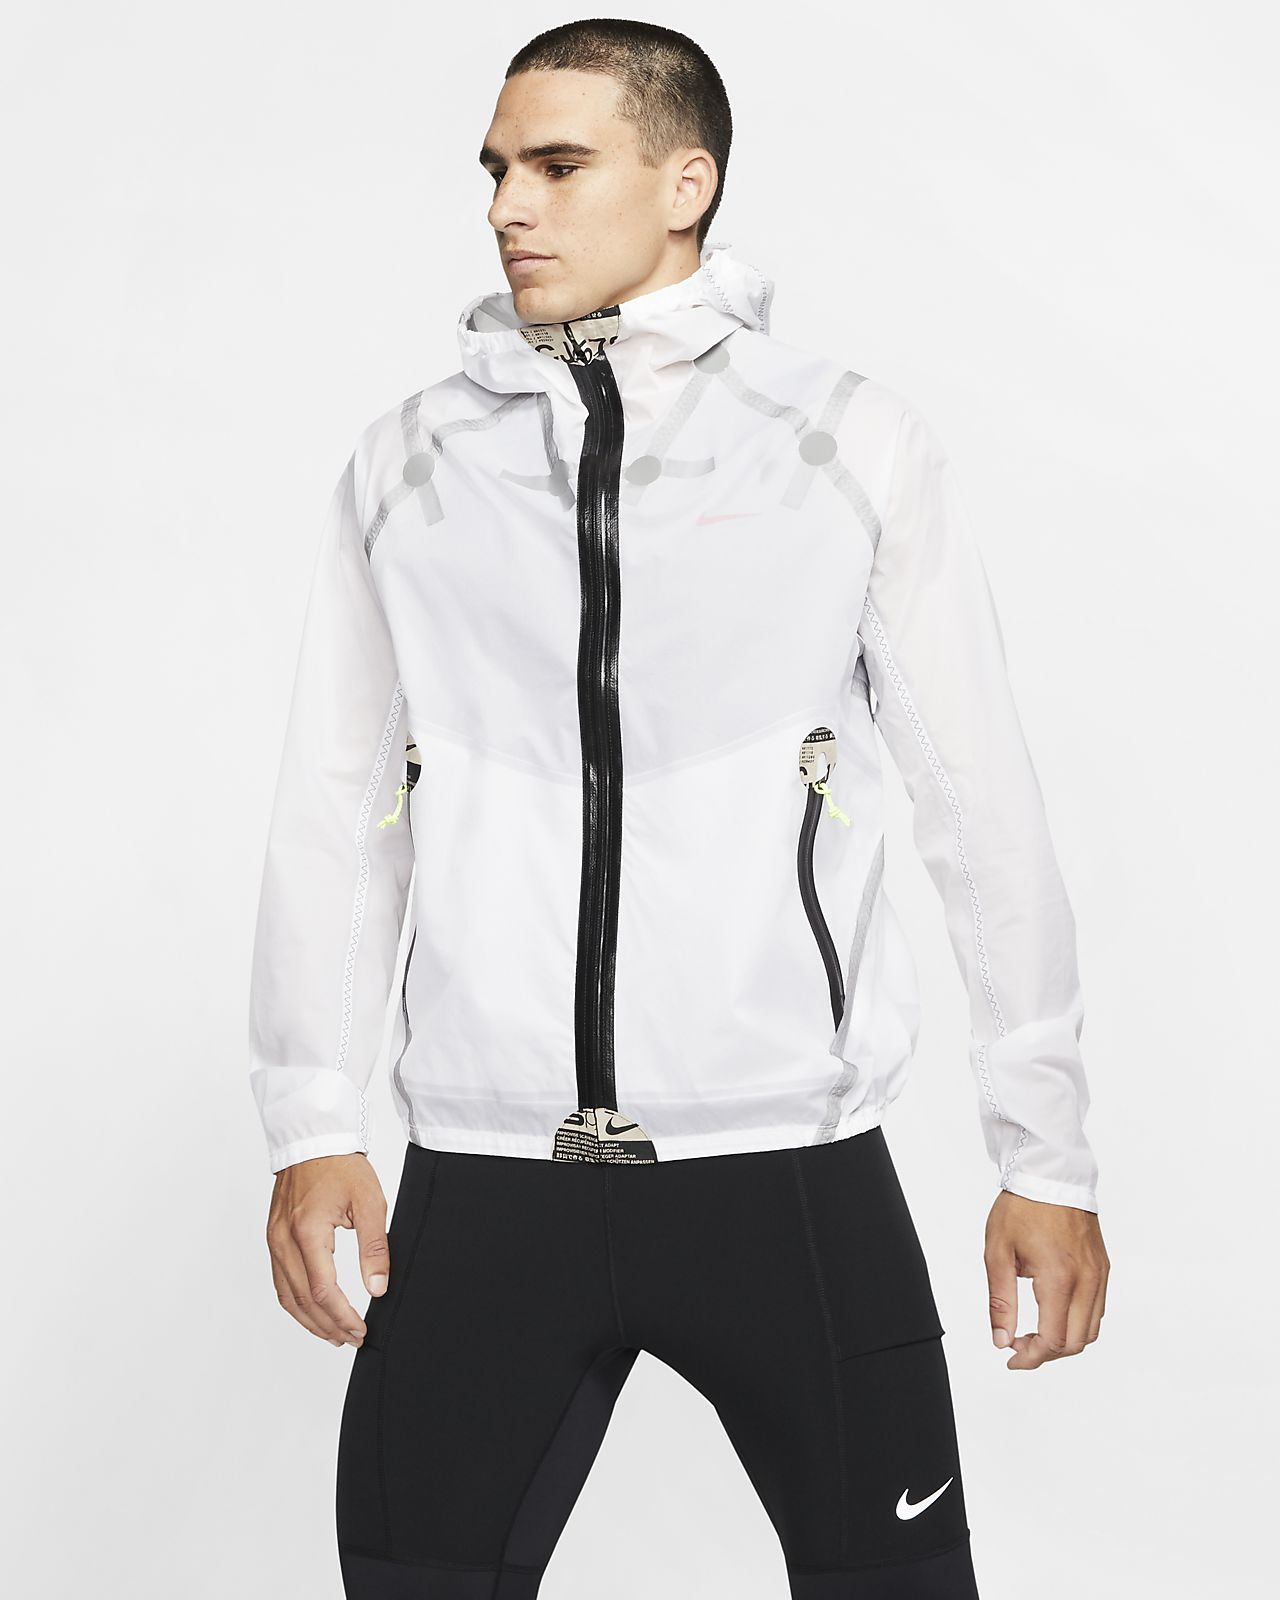 Nike ISPA Men's Jacket